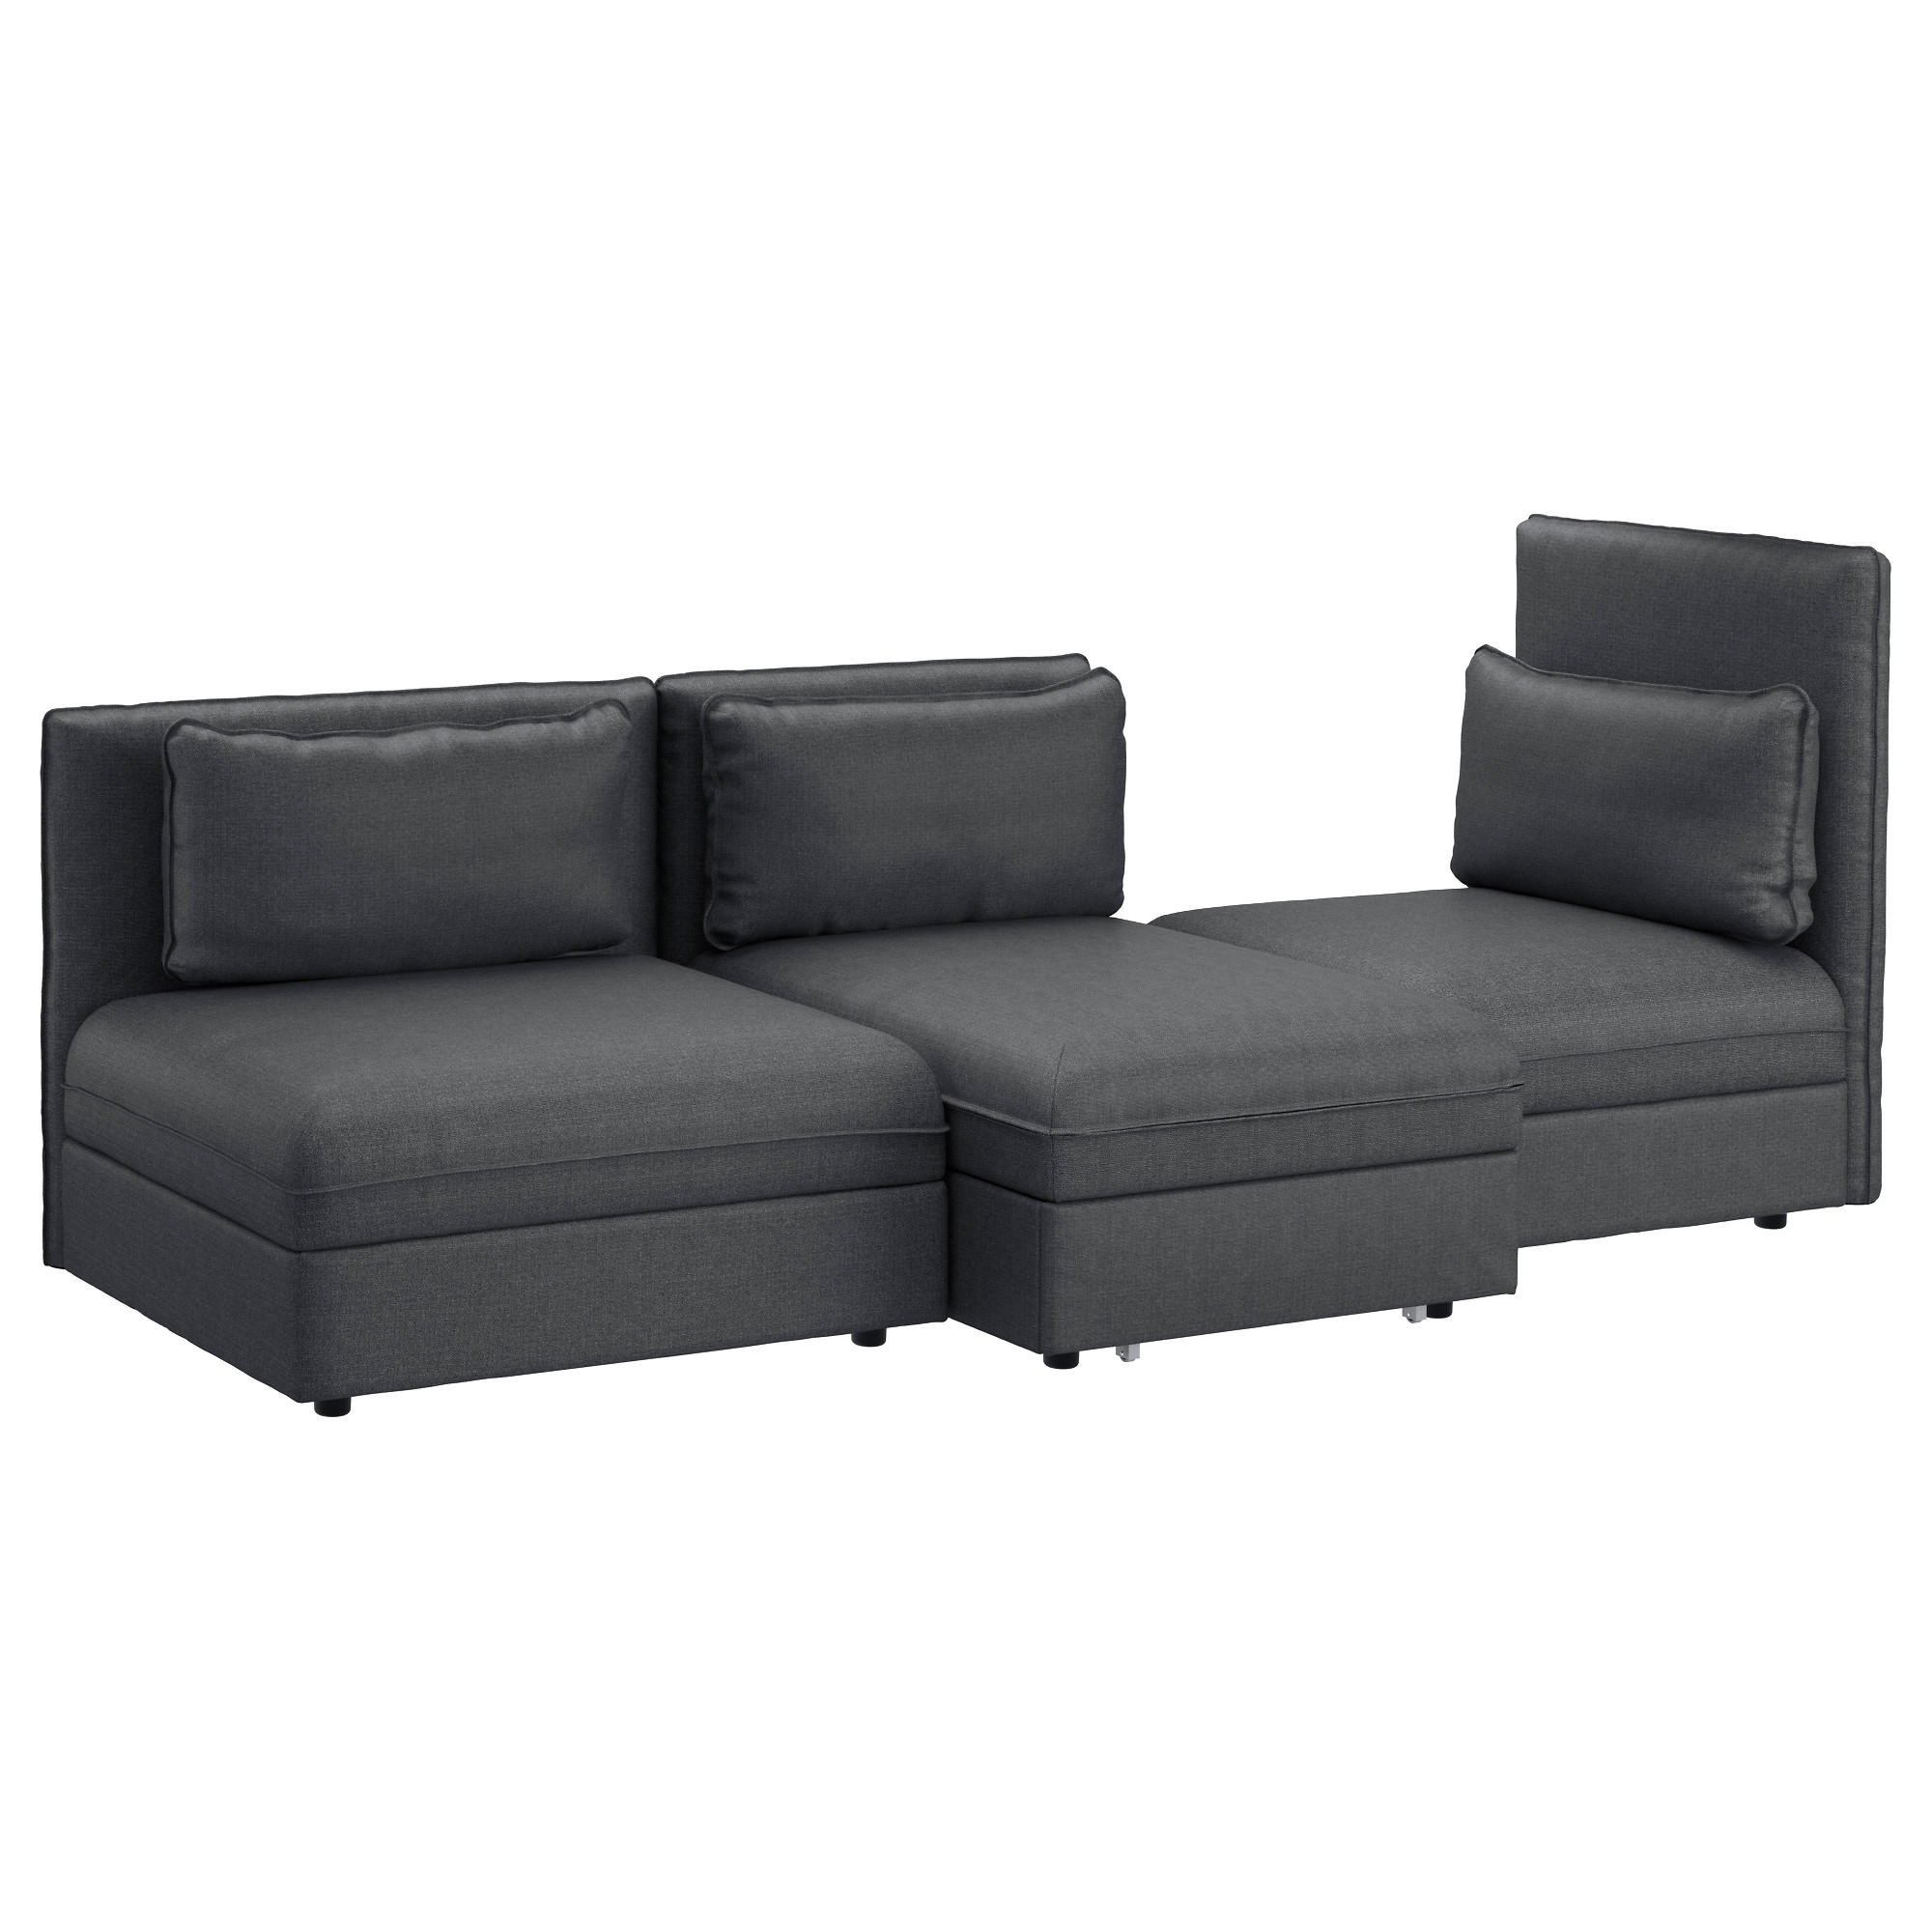 Ikea Sectional Sleeper Sofas Within Famous Vallentuna Sleeper Sectional, 3 Seat – Hillared Dark Gray – Ikea (View 10 of 20)